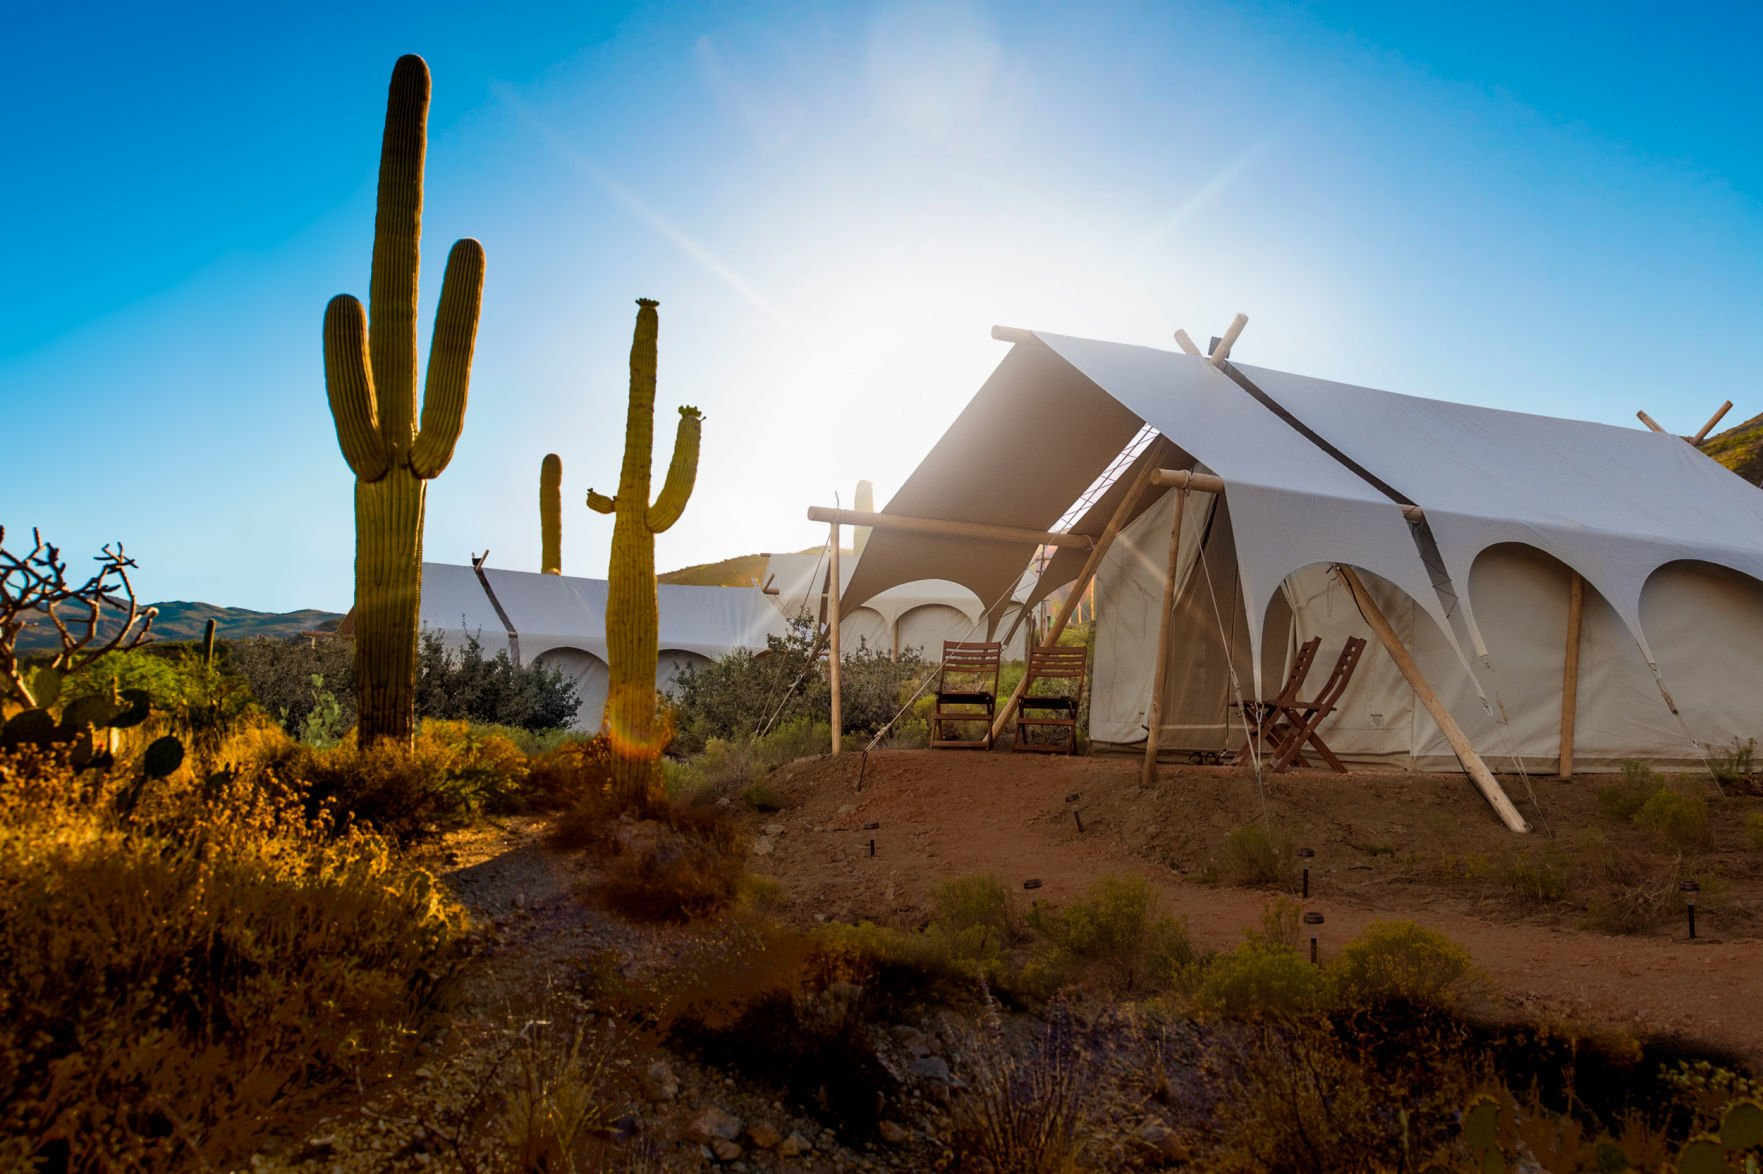 Tucson Real Estate: Luxury camping venue to open in August